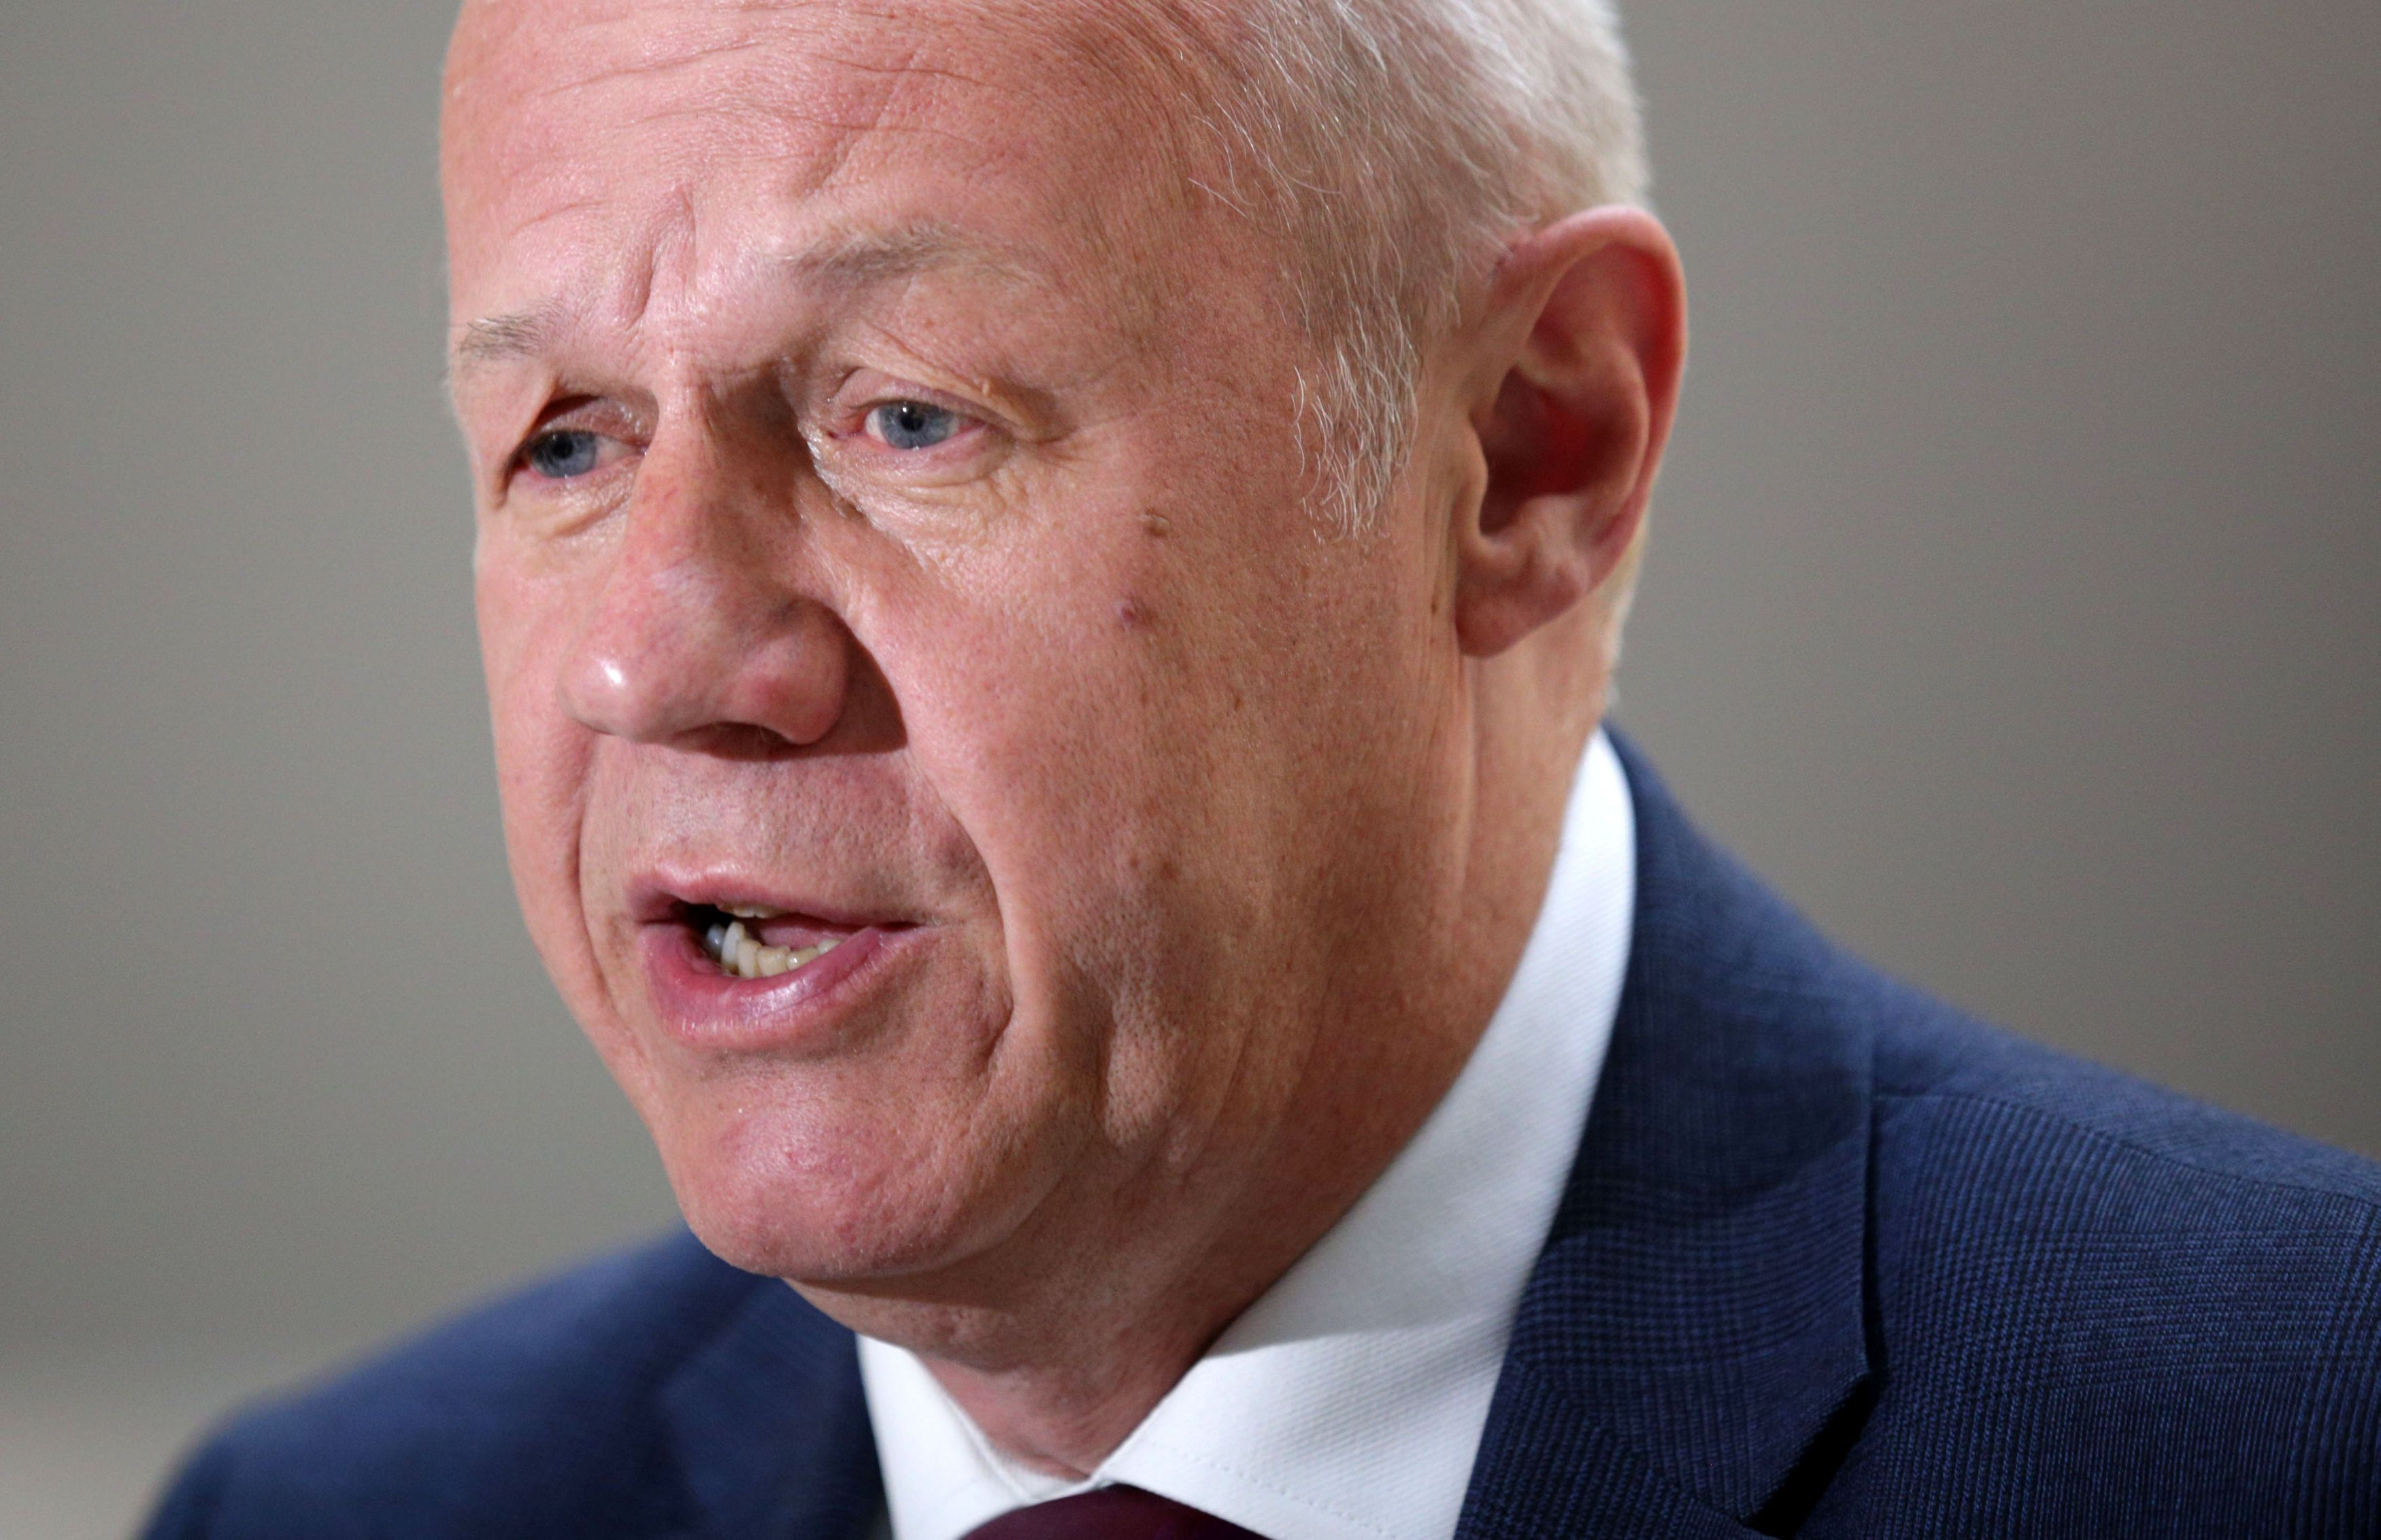 Ex-Immigration Minister Damian Green 'Ignored' Windrush Citizen's Plight In 2011, MP